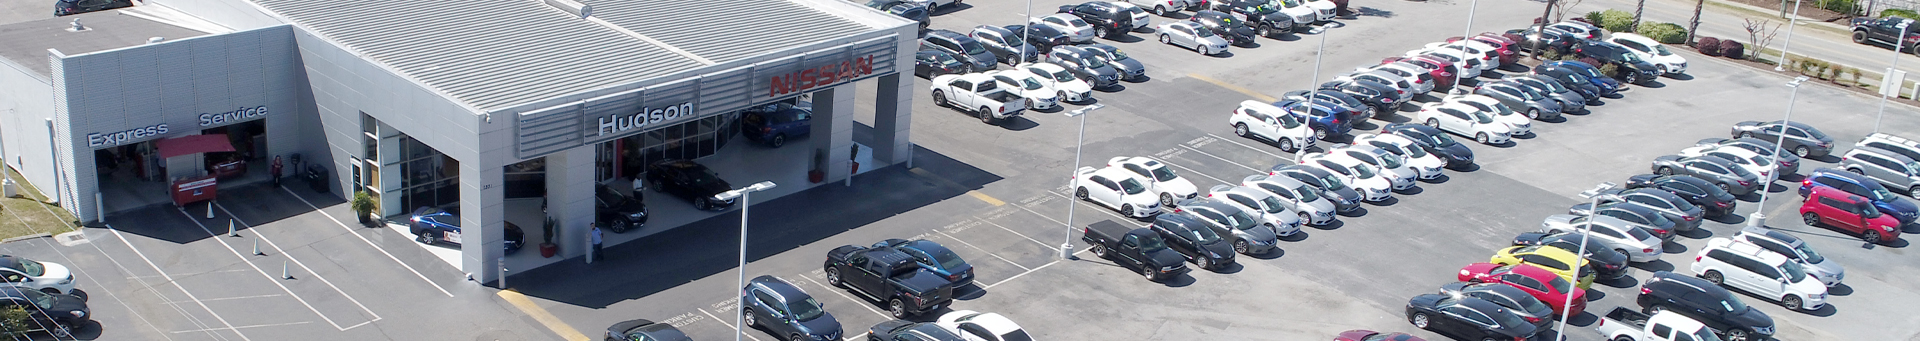 Hudson Nissan of North Charleston Storefront